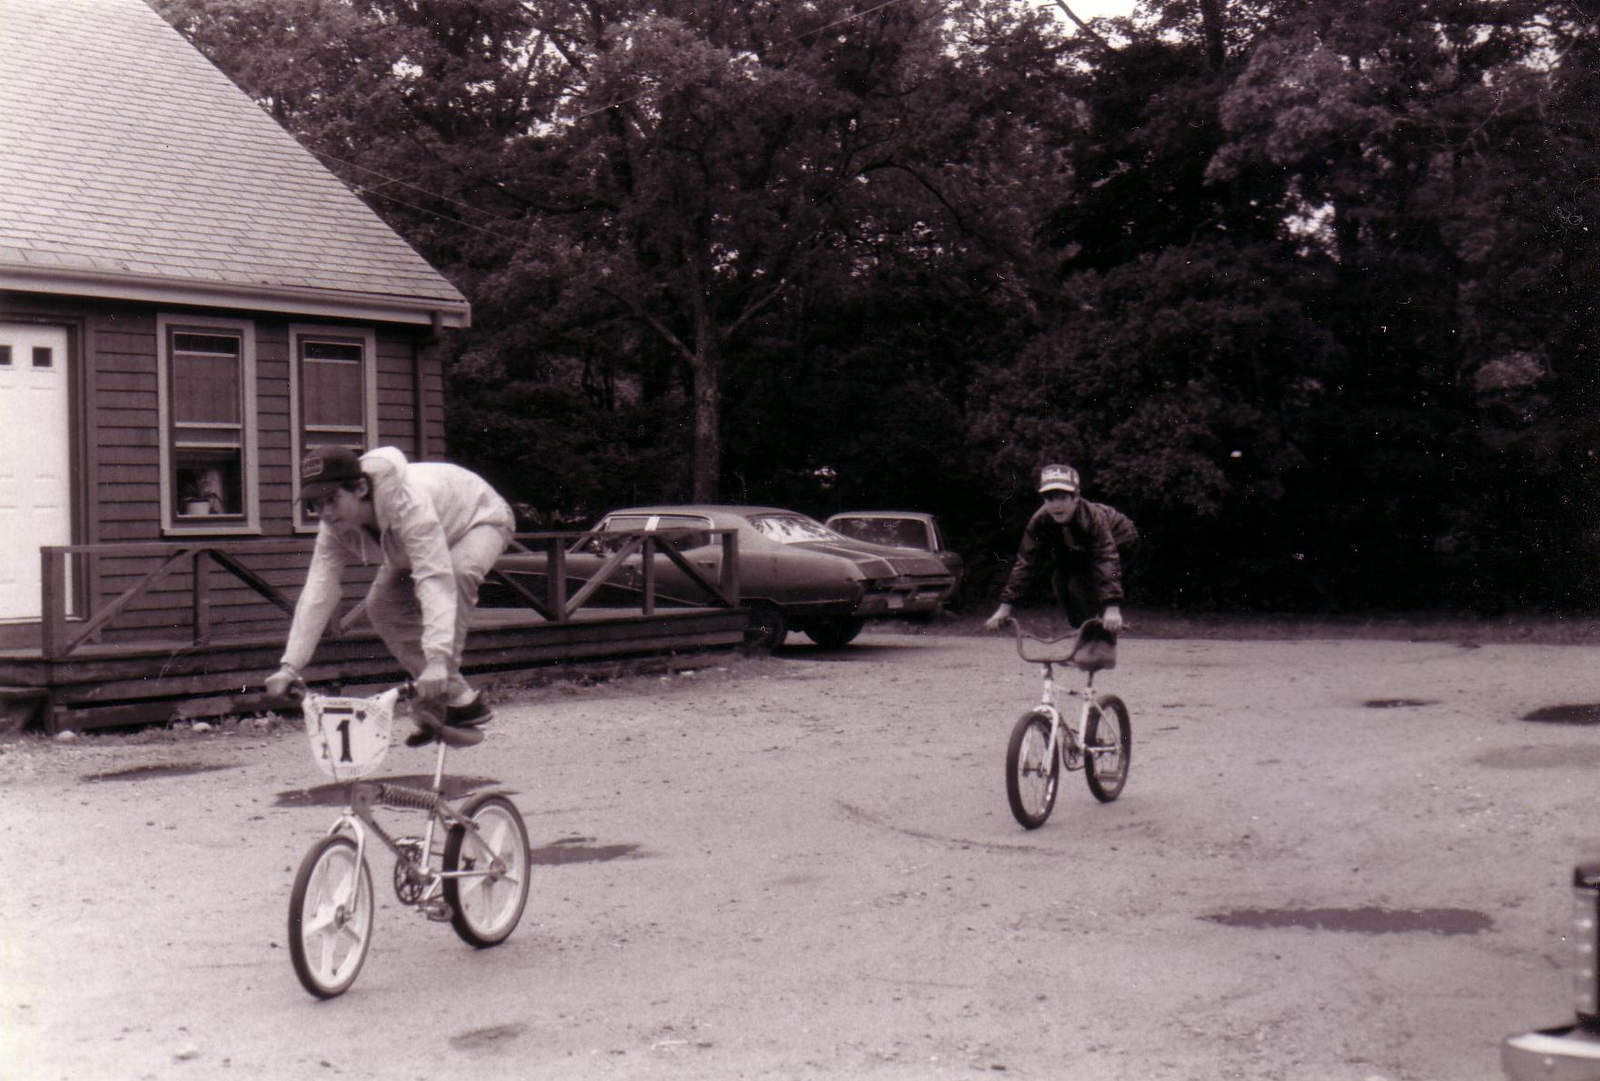 https://s3.amazonaws.com/uploads.bmxmuseum.com/user-images/237705/scott--ian-25c857e168d.jpg